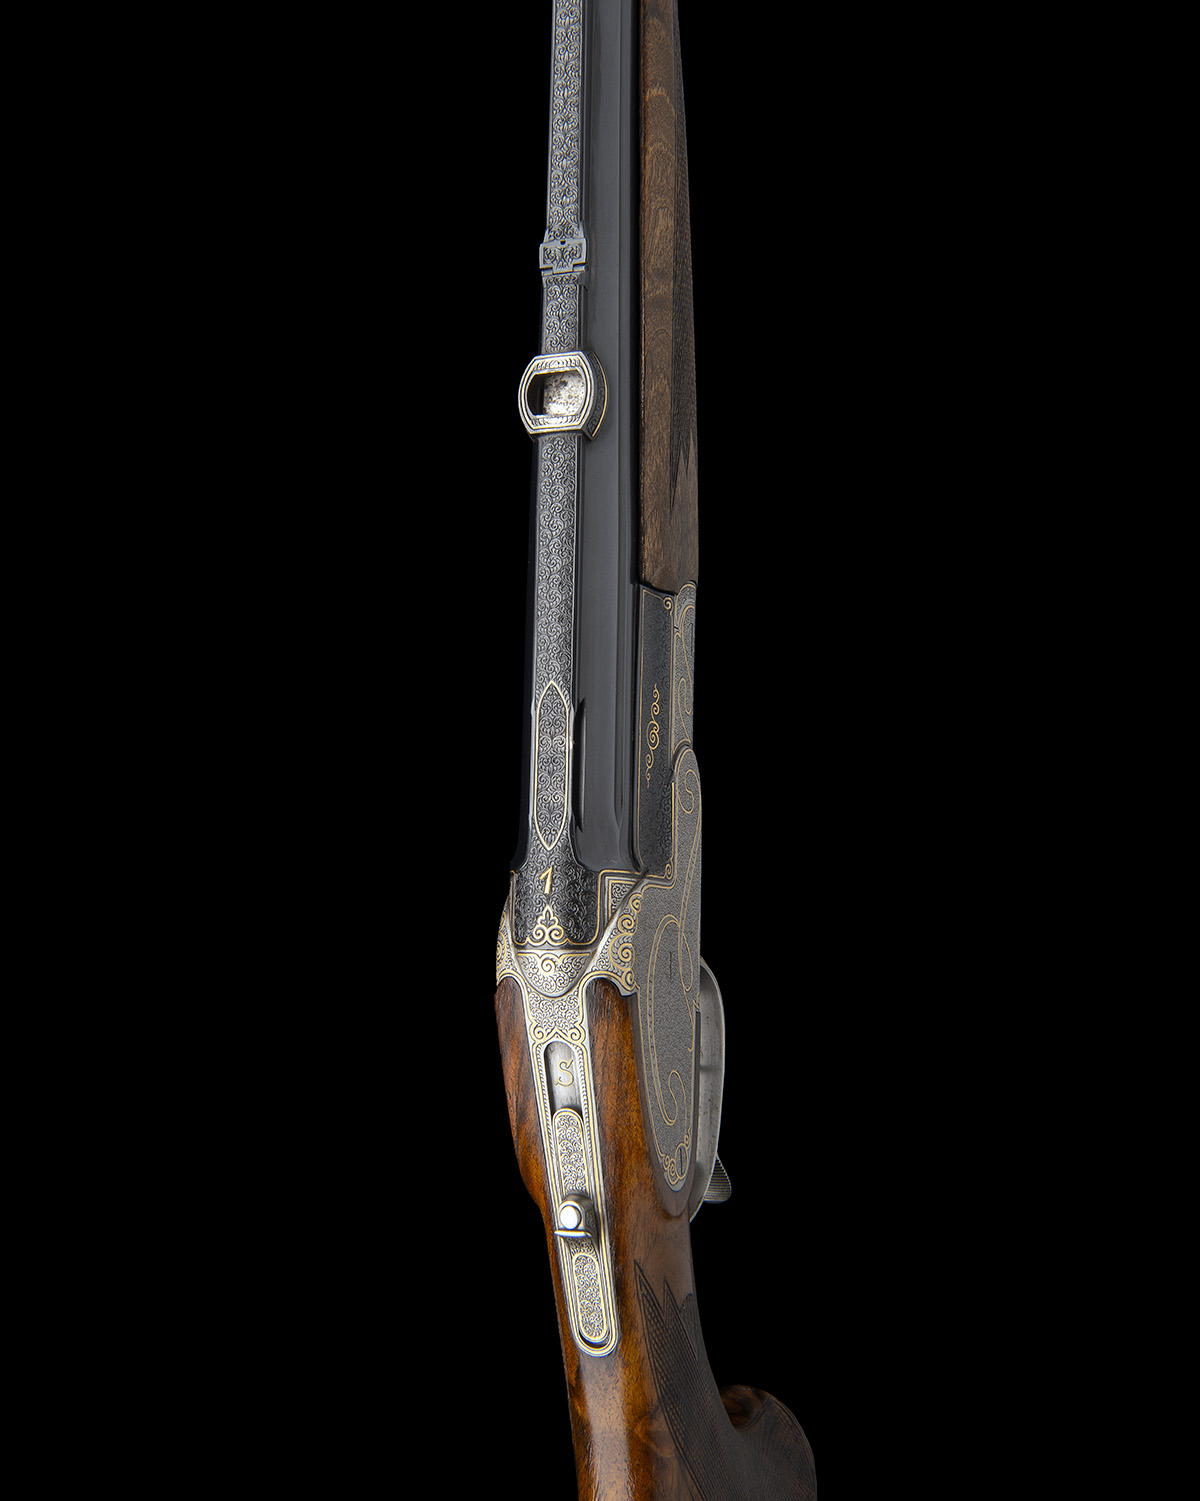 H. SCHEIRING A .300 WIN. MAG. JAEGER PATENT SINGLE-BARRELLED SIDEPLATED PUSH-FORWARD UNDERLEVER - Image 12 of 13